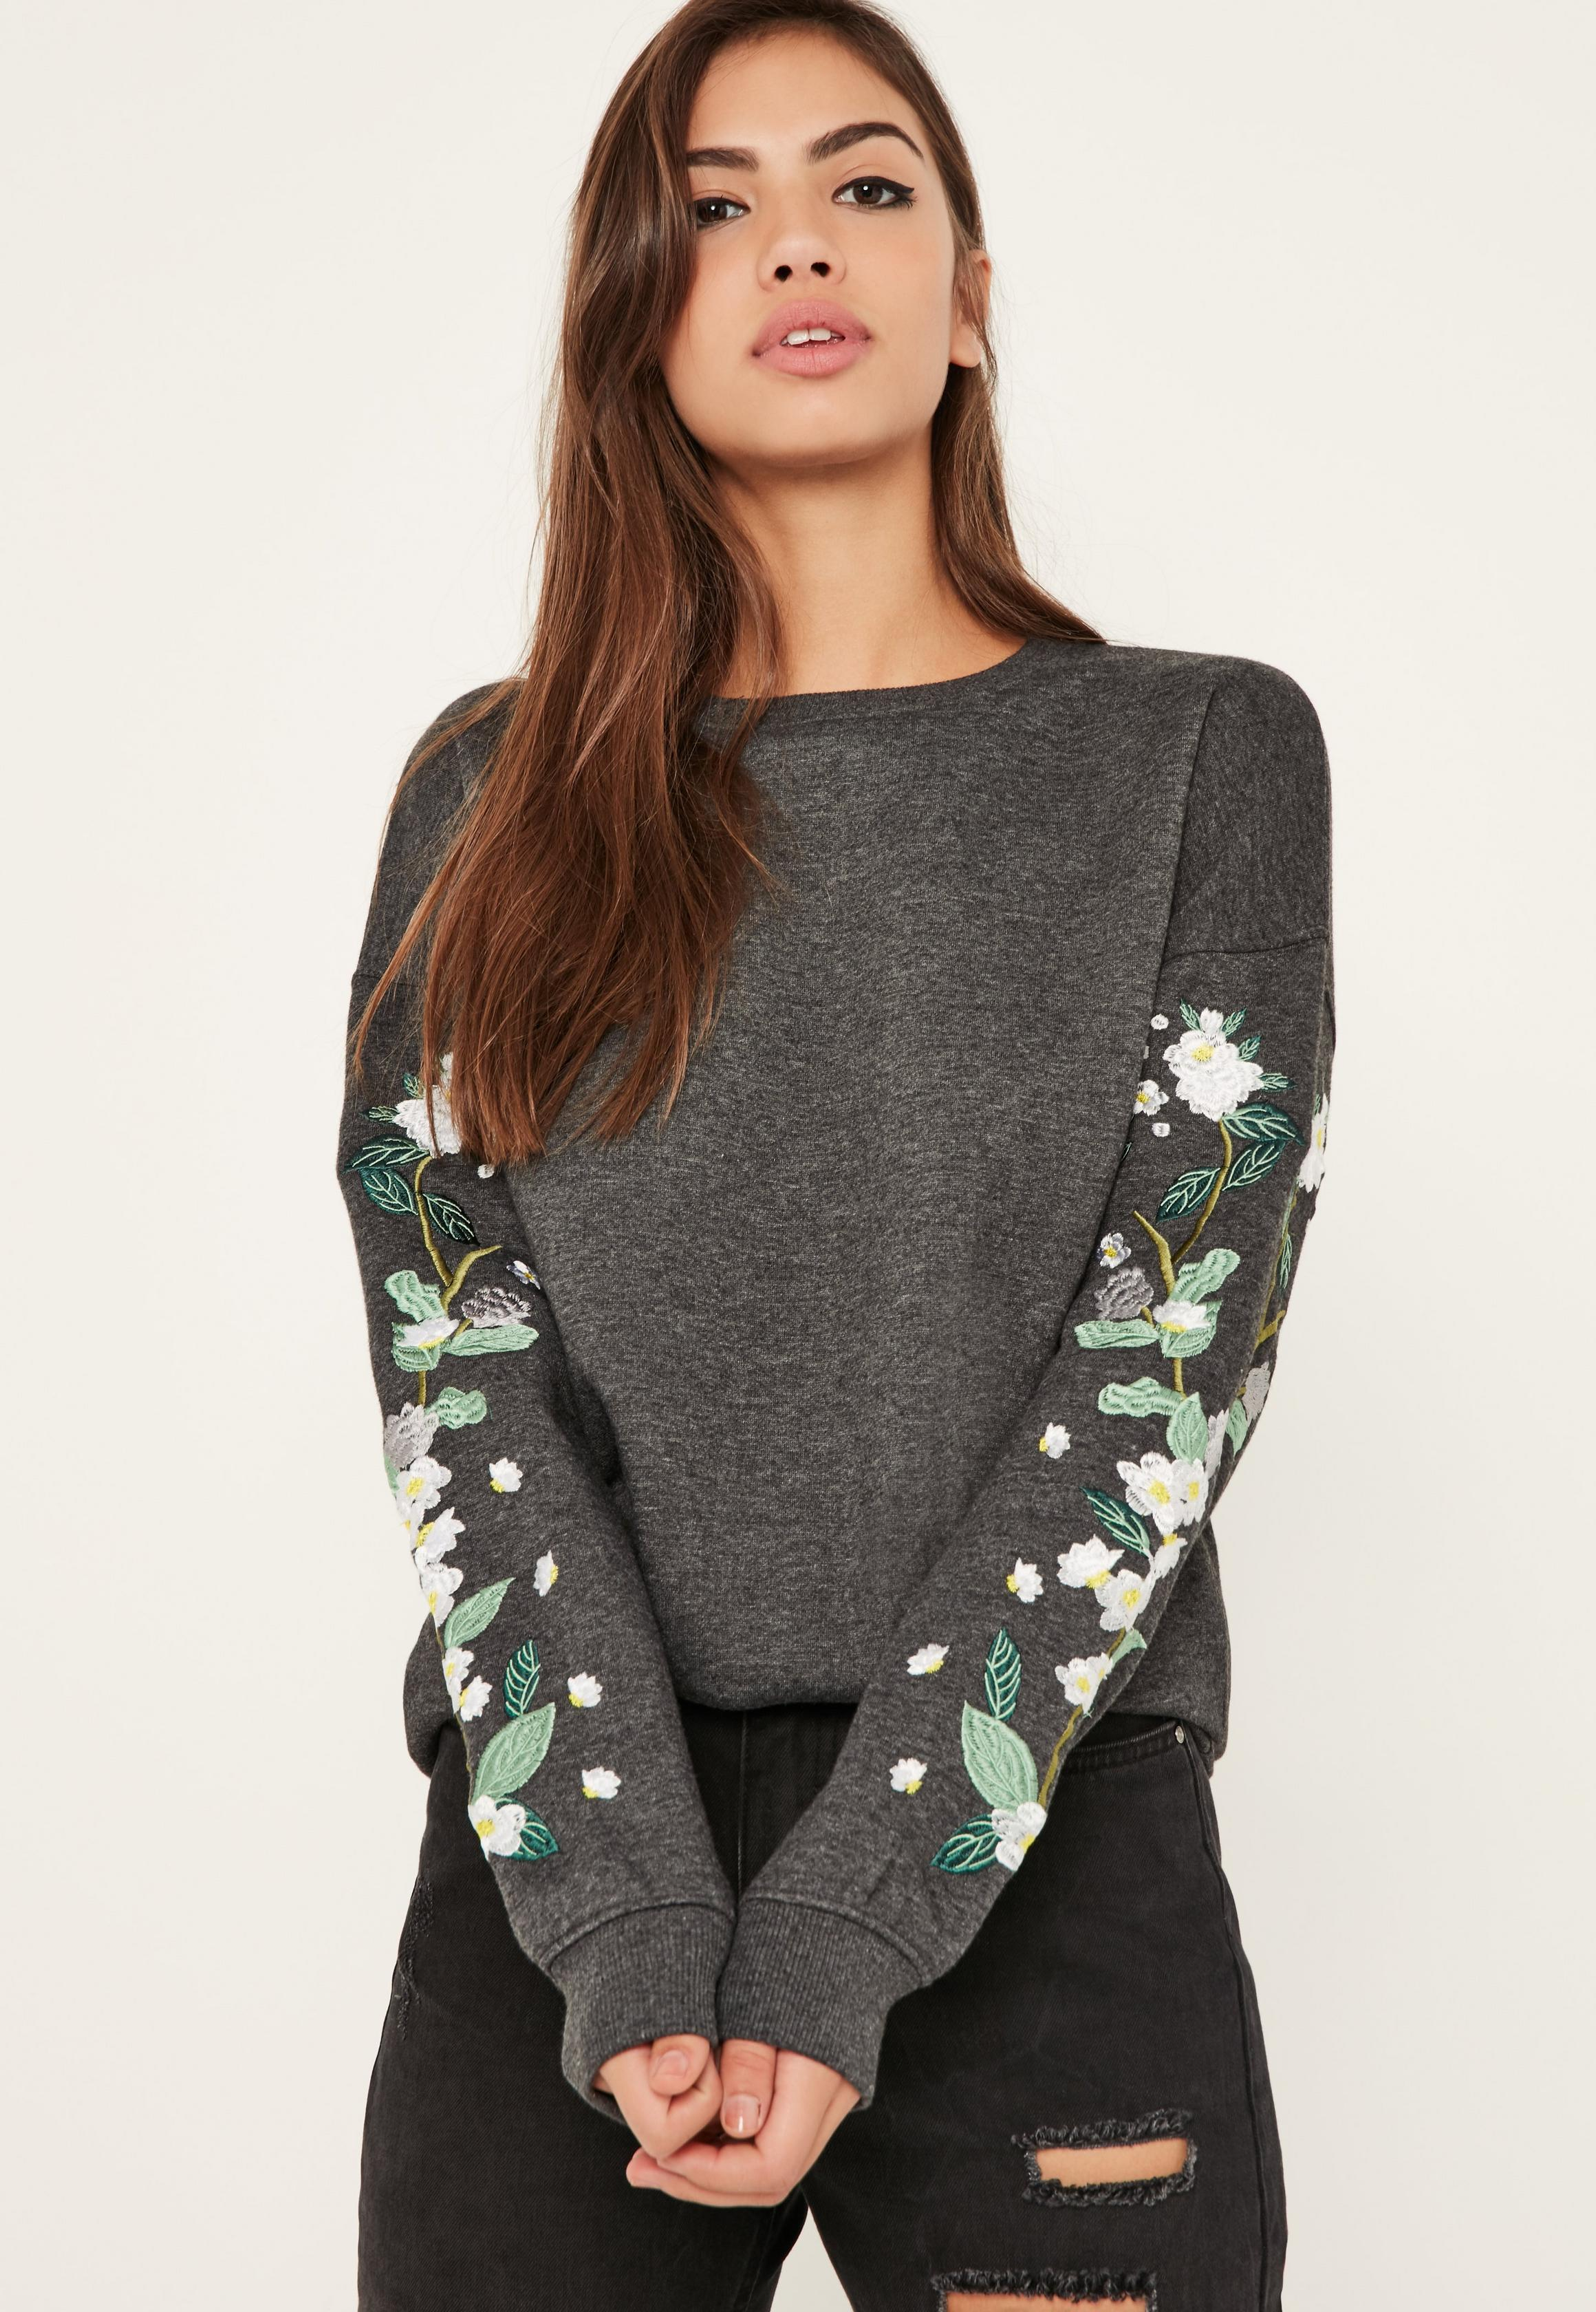 MISSGUIDED; $40